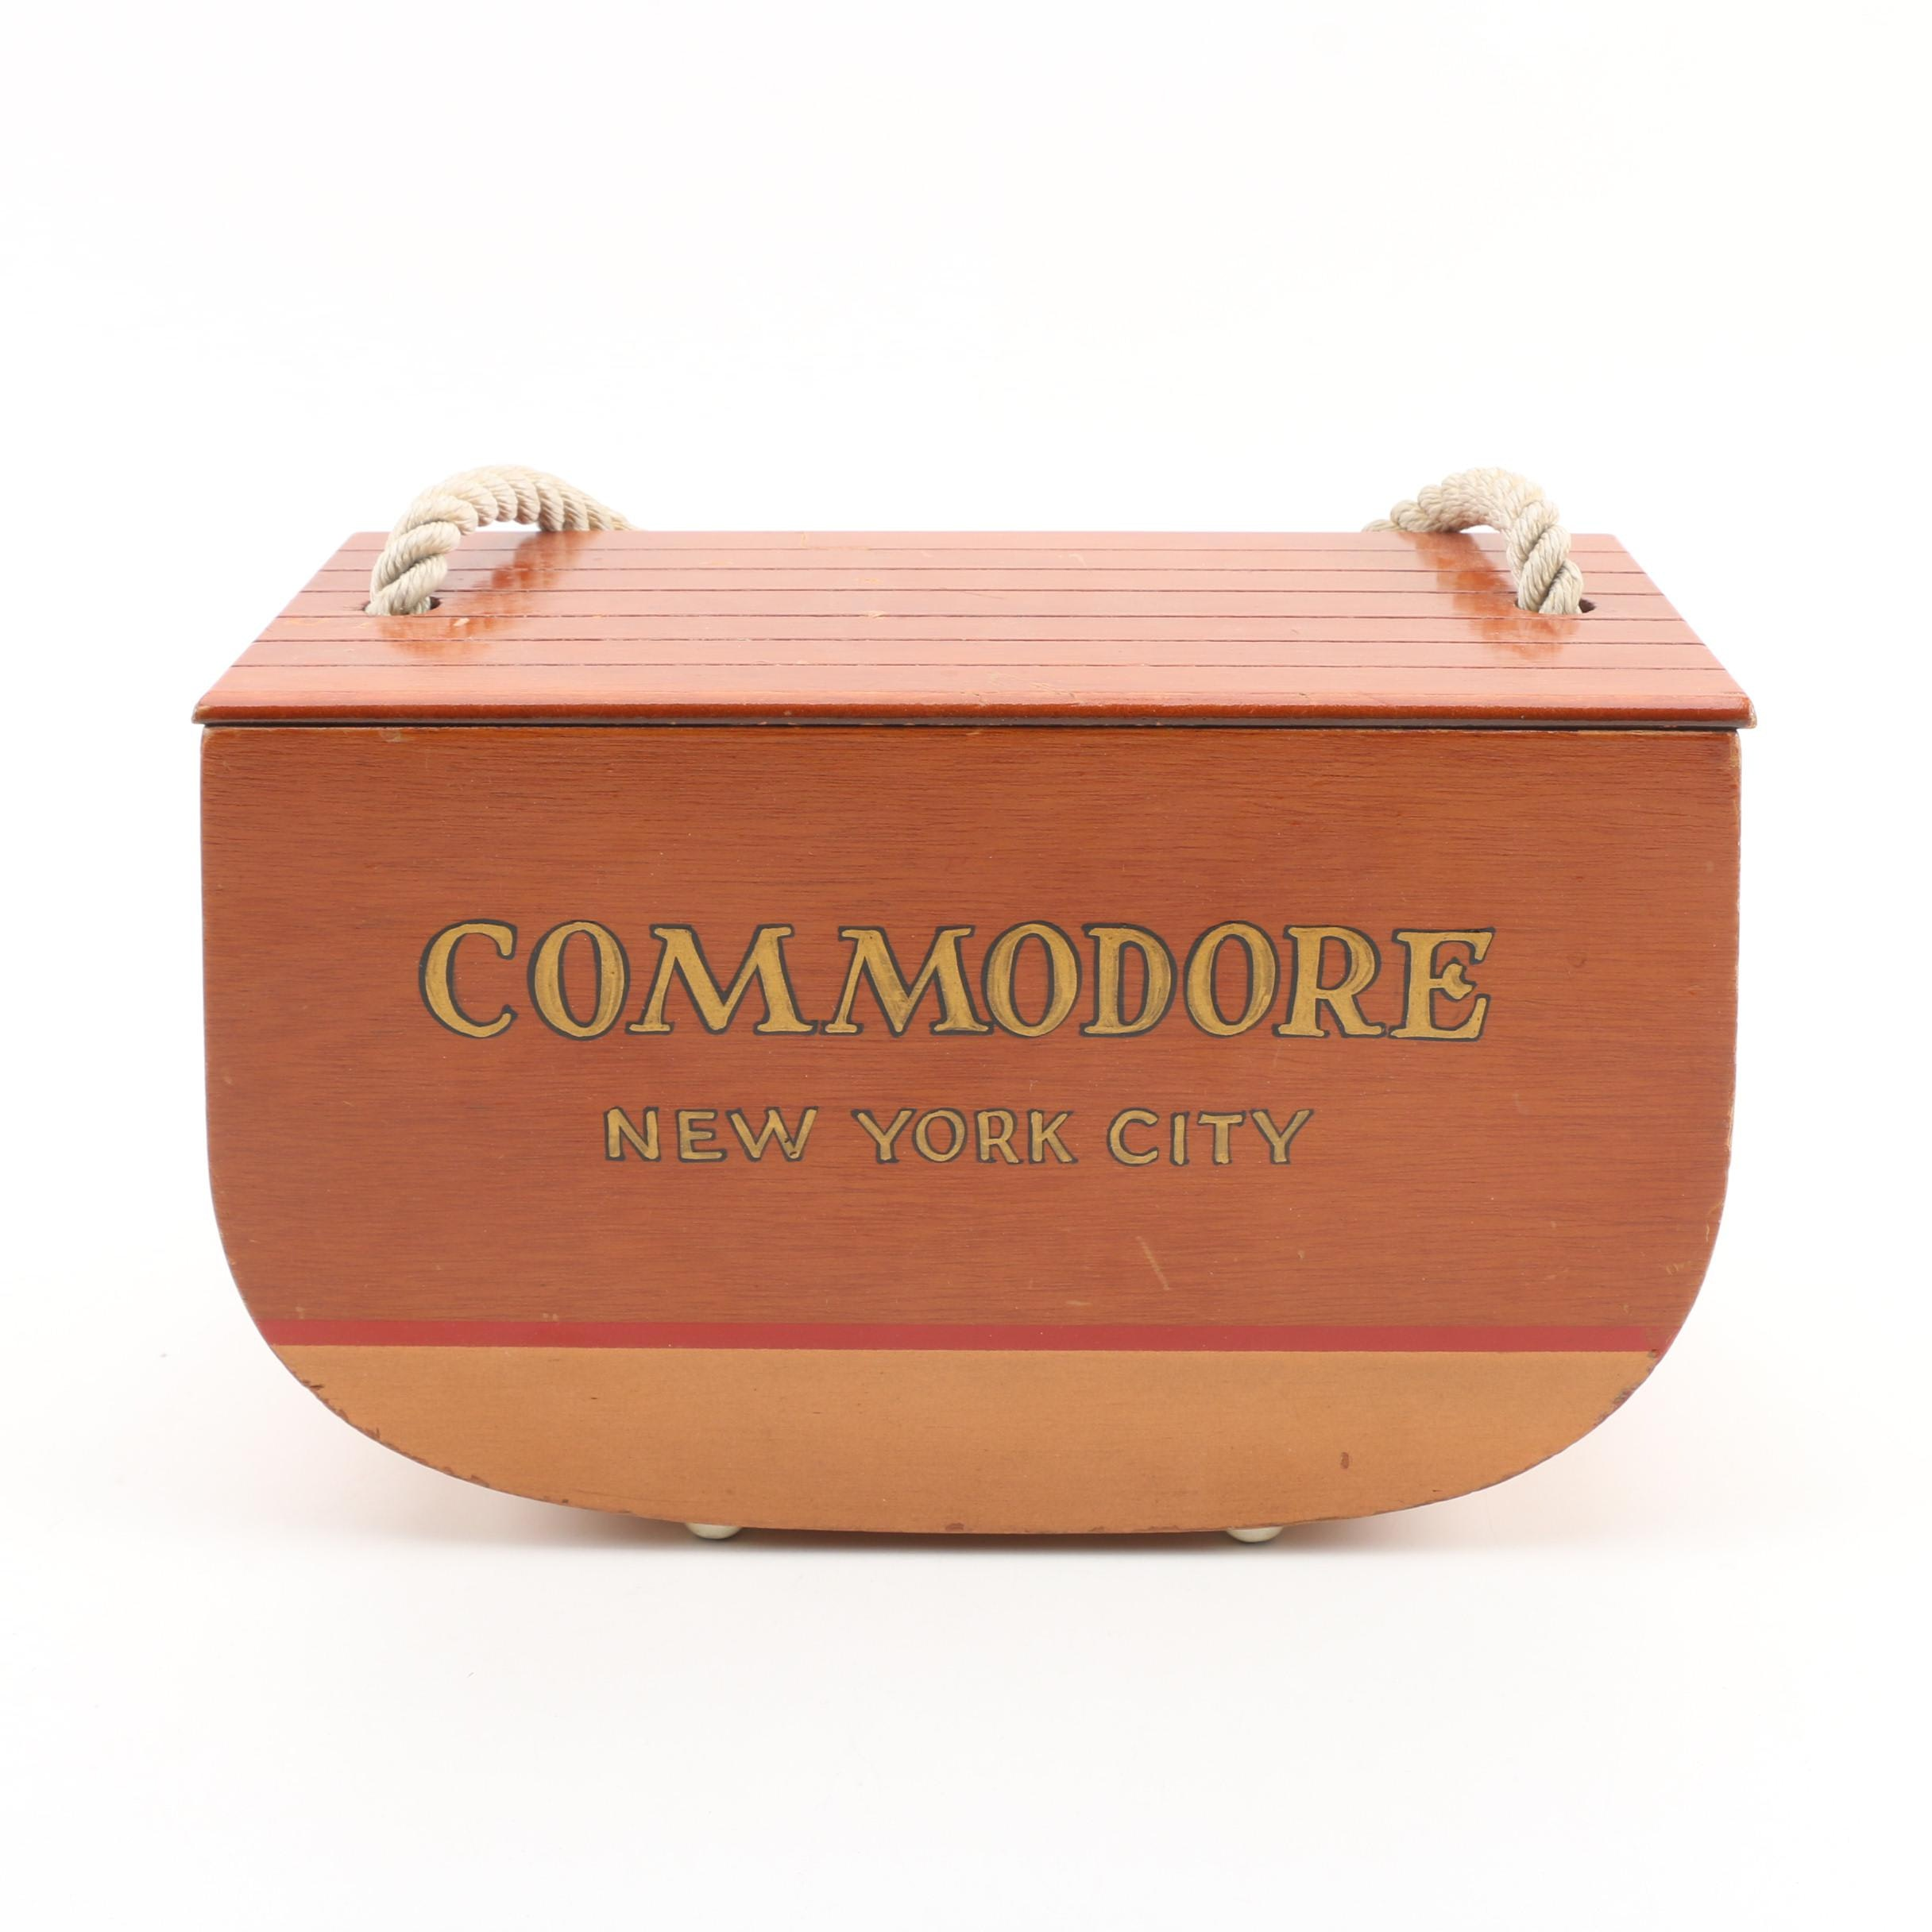 Commodore New York Cork Lined Wooden Box with Rope Handle, Vintage